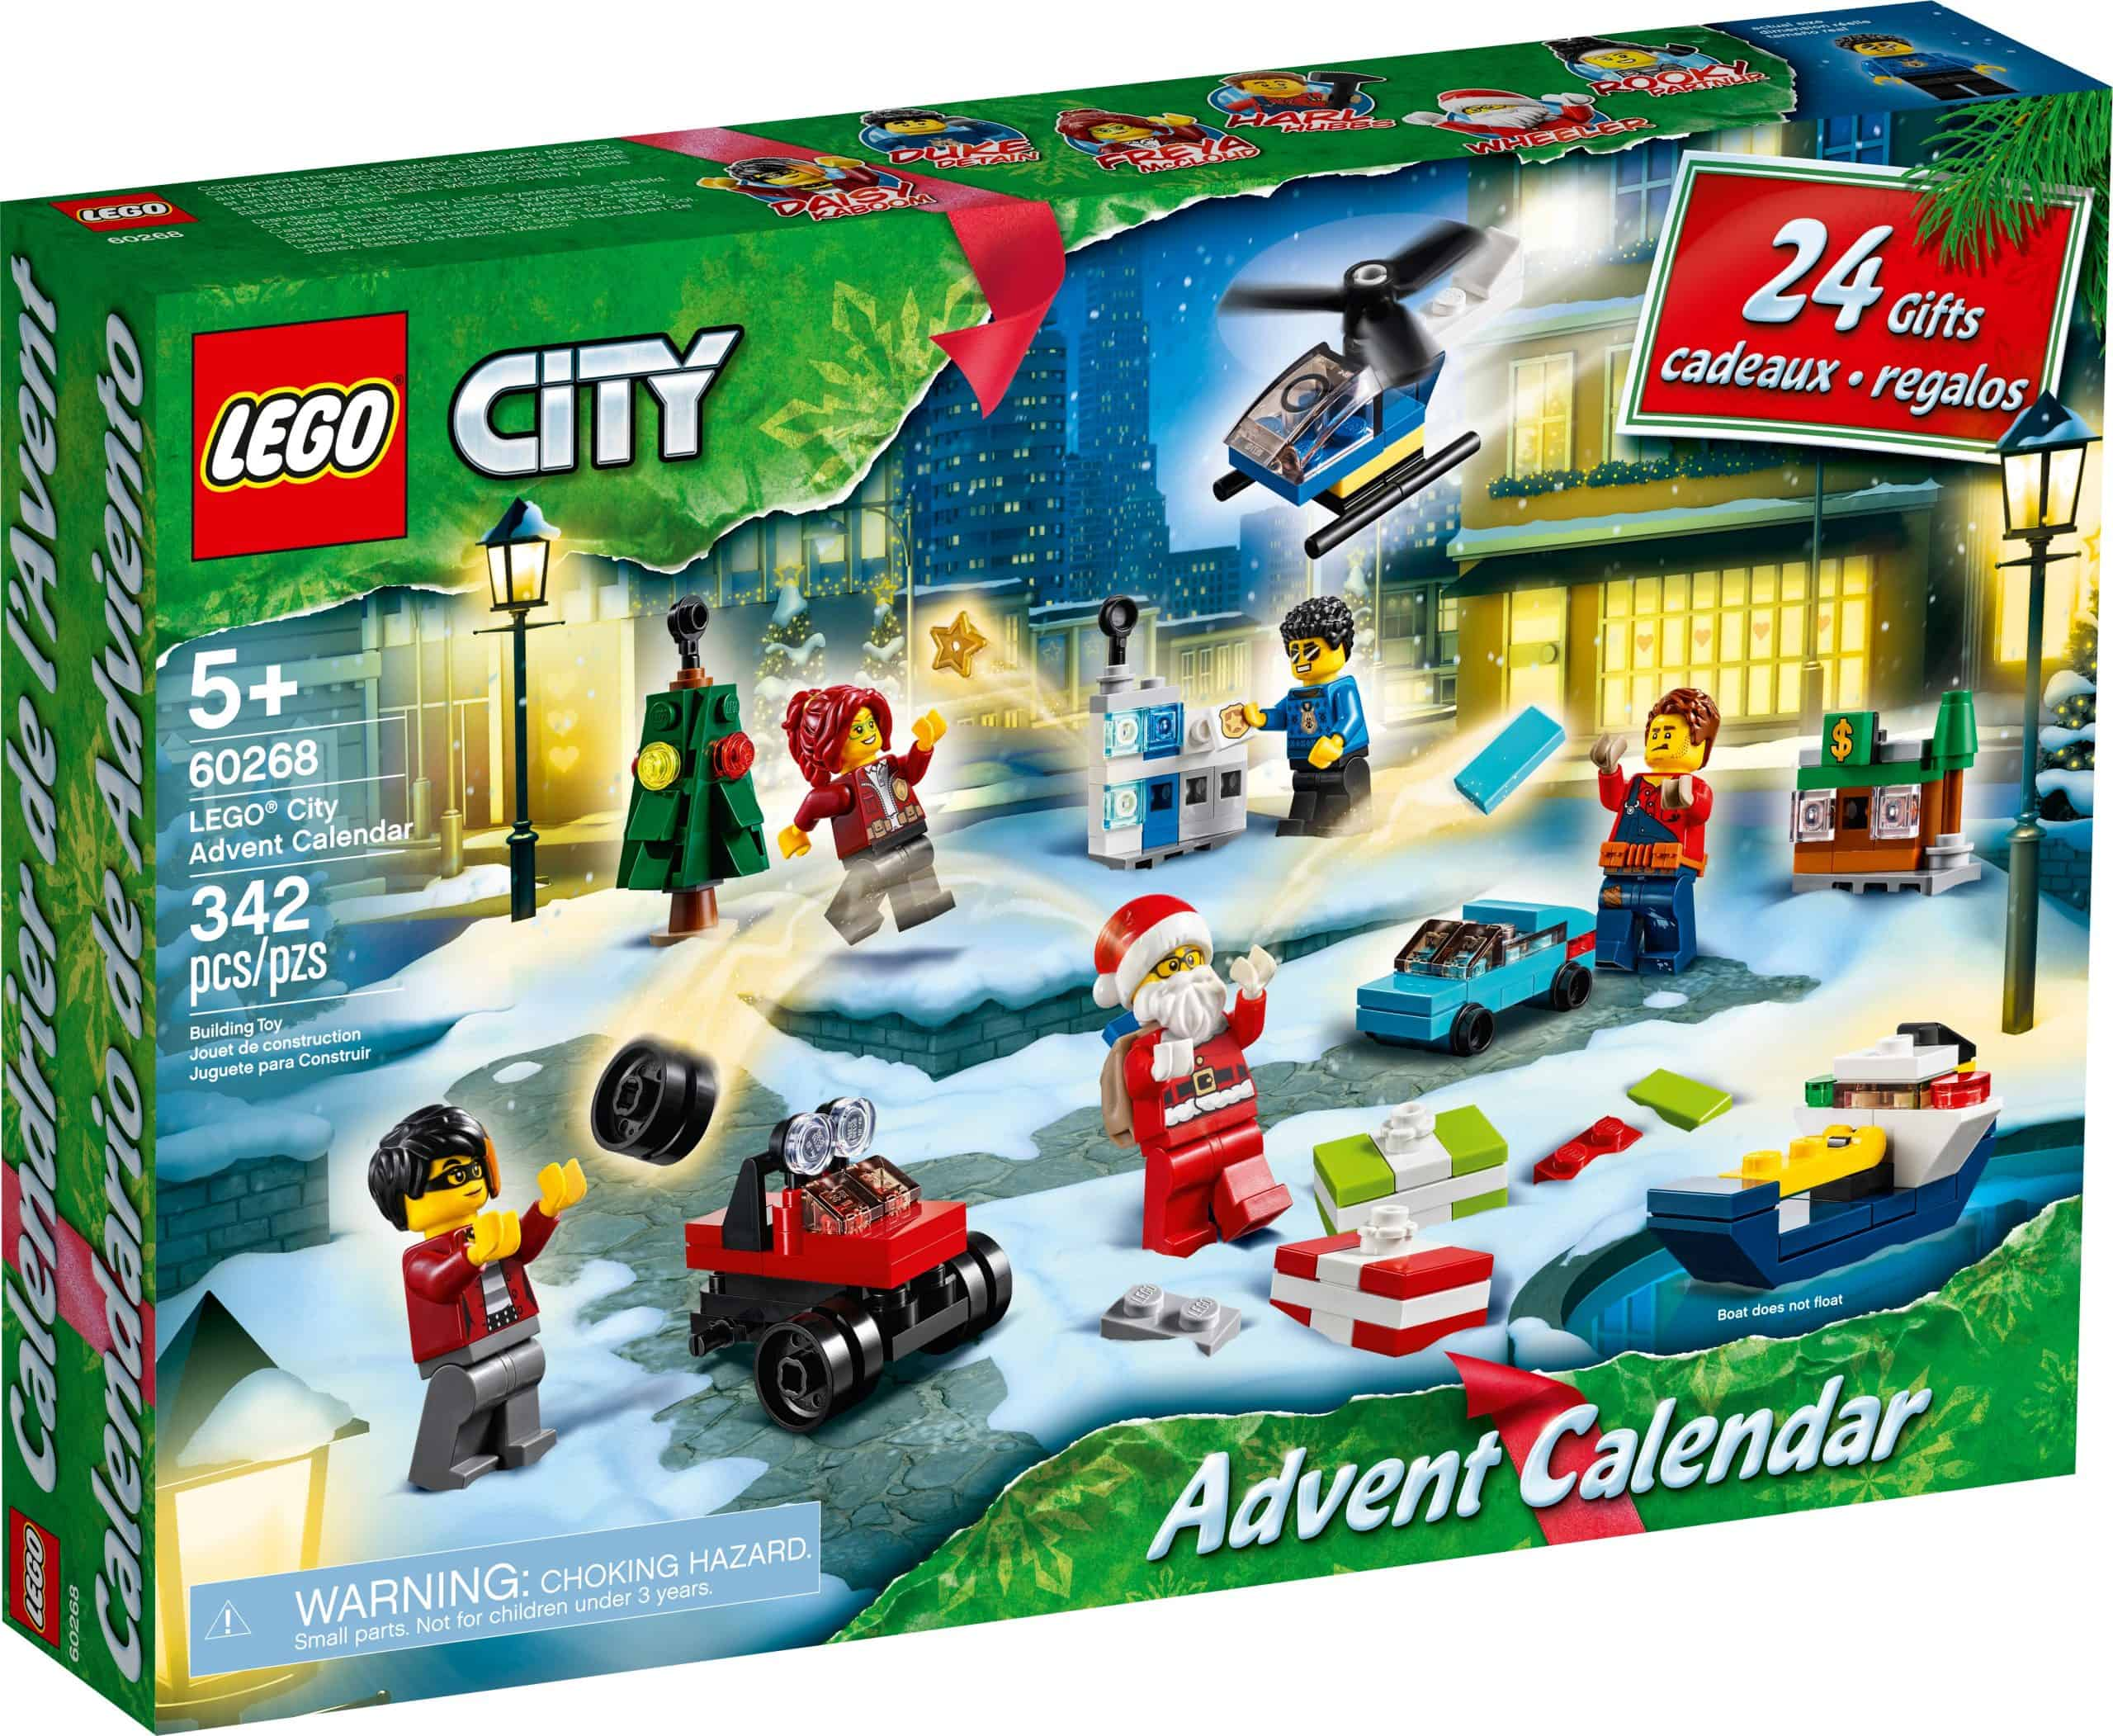 LEGO 60268 City adventkalender